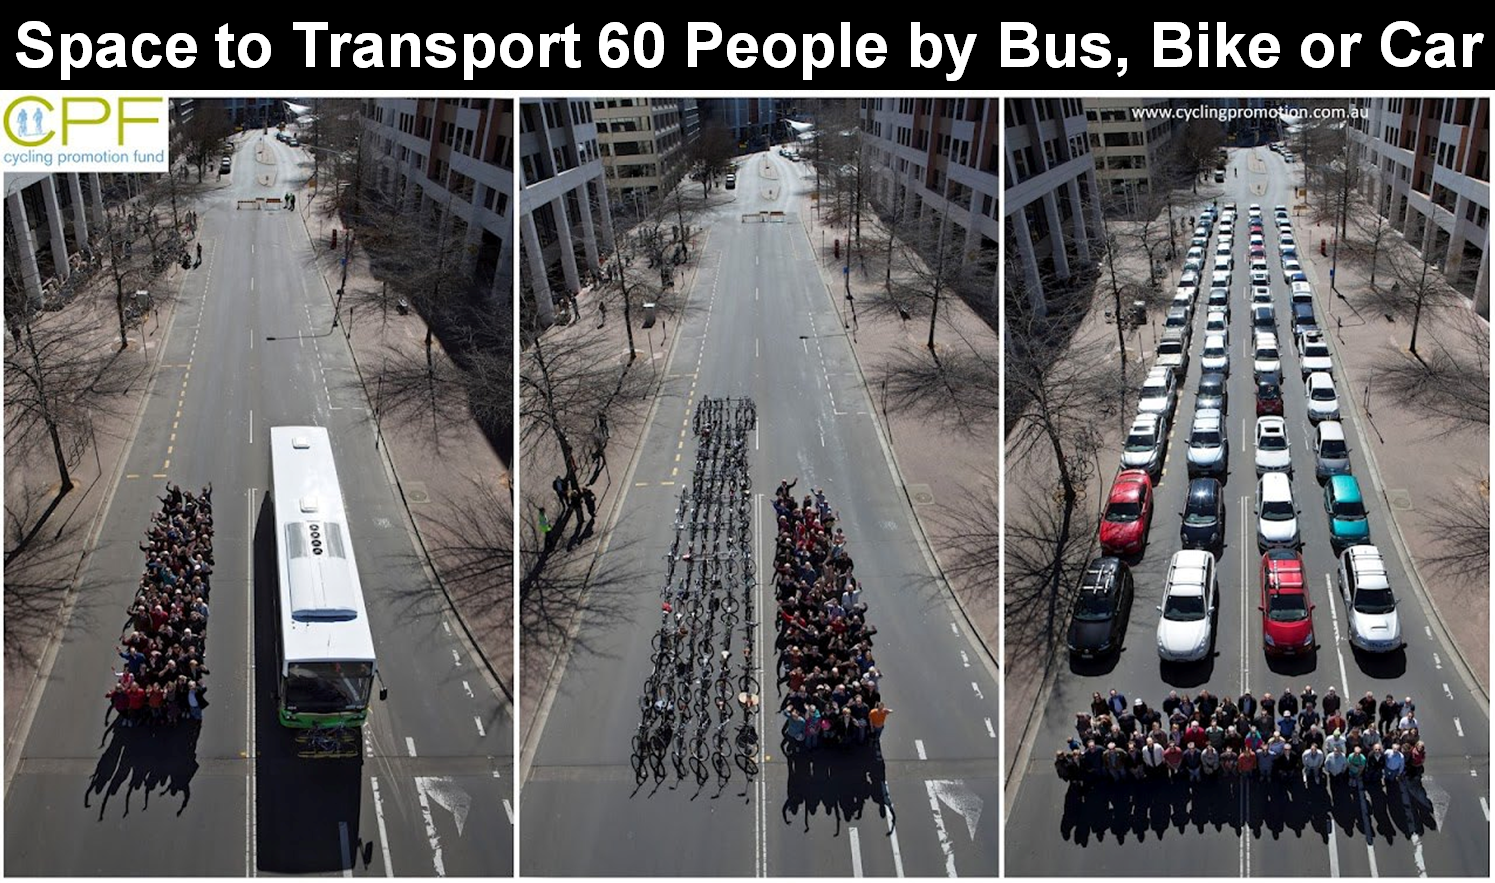 public transit vs private car